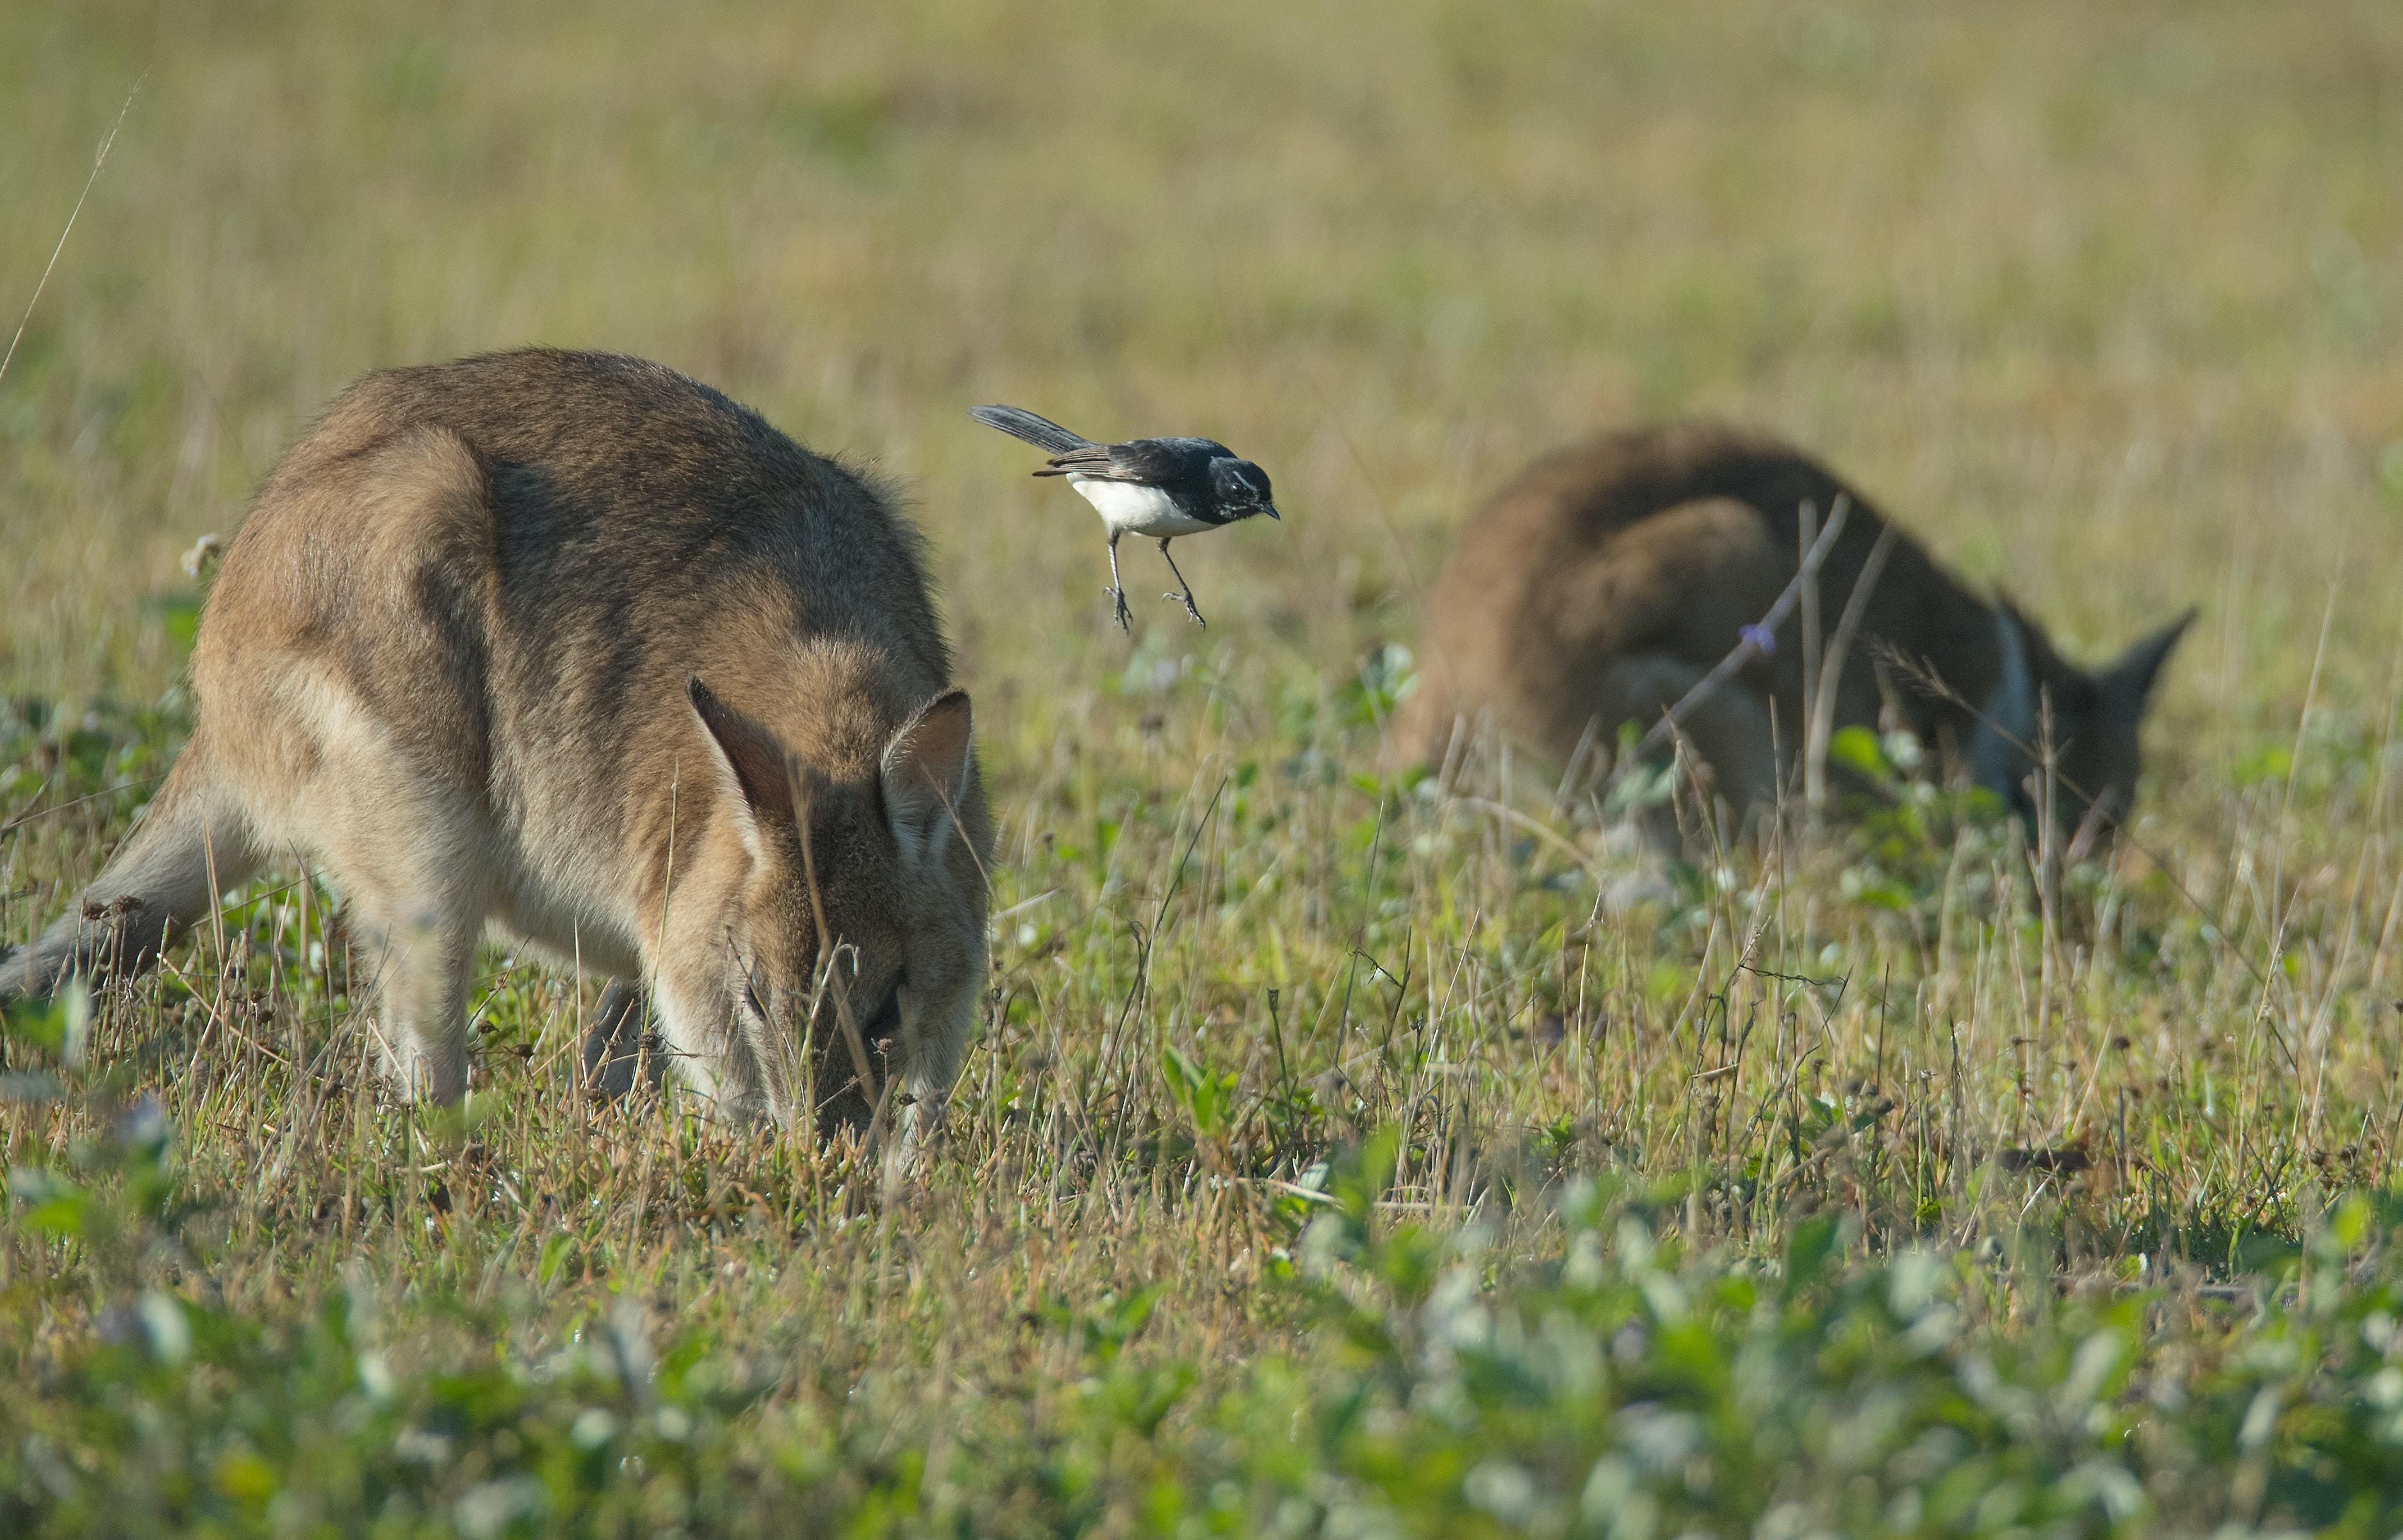 black sparrow and two brown kangaroos on field